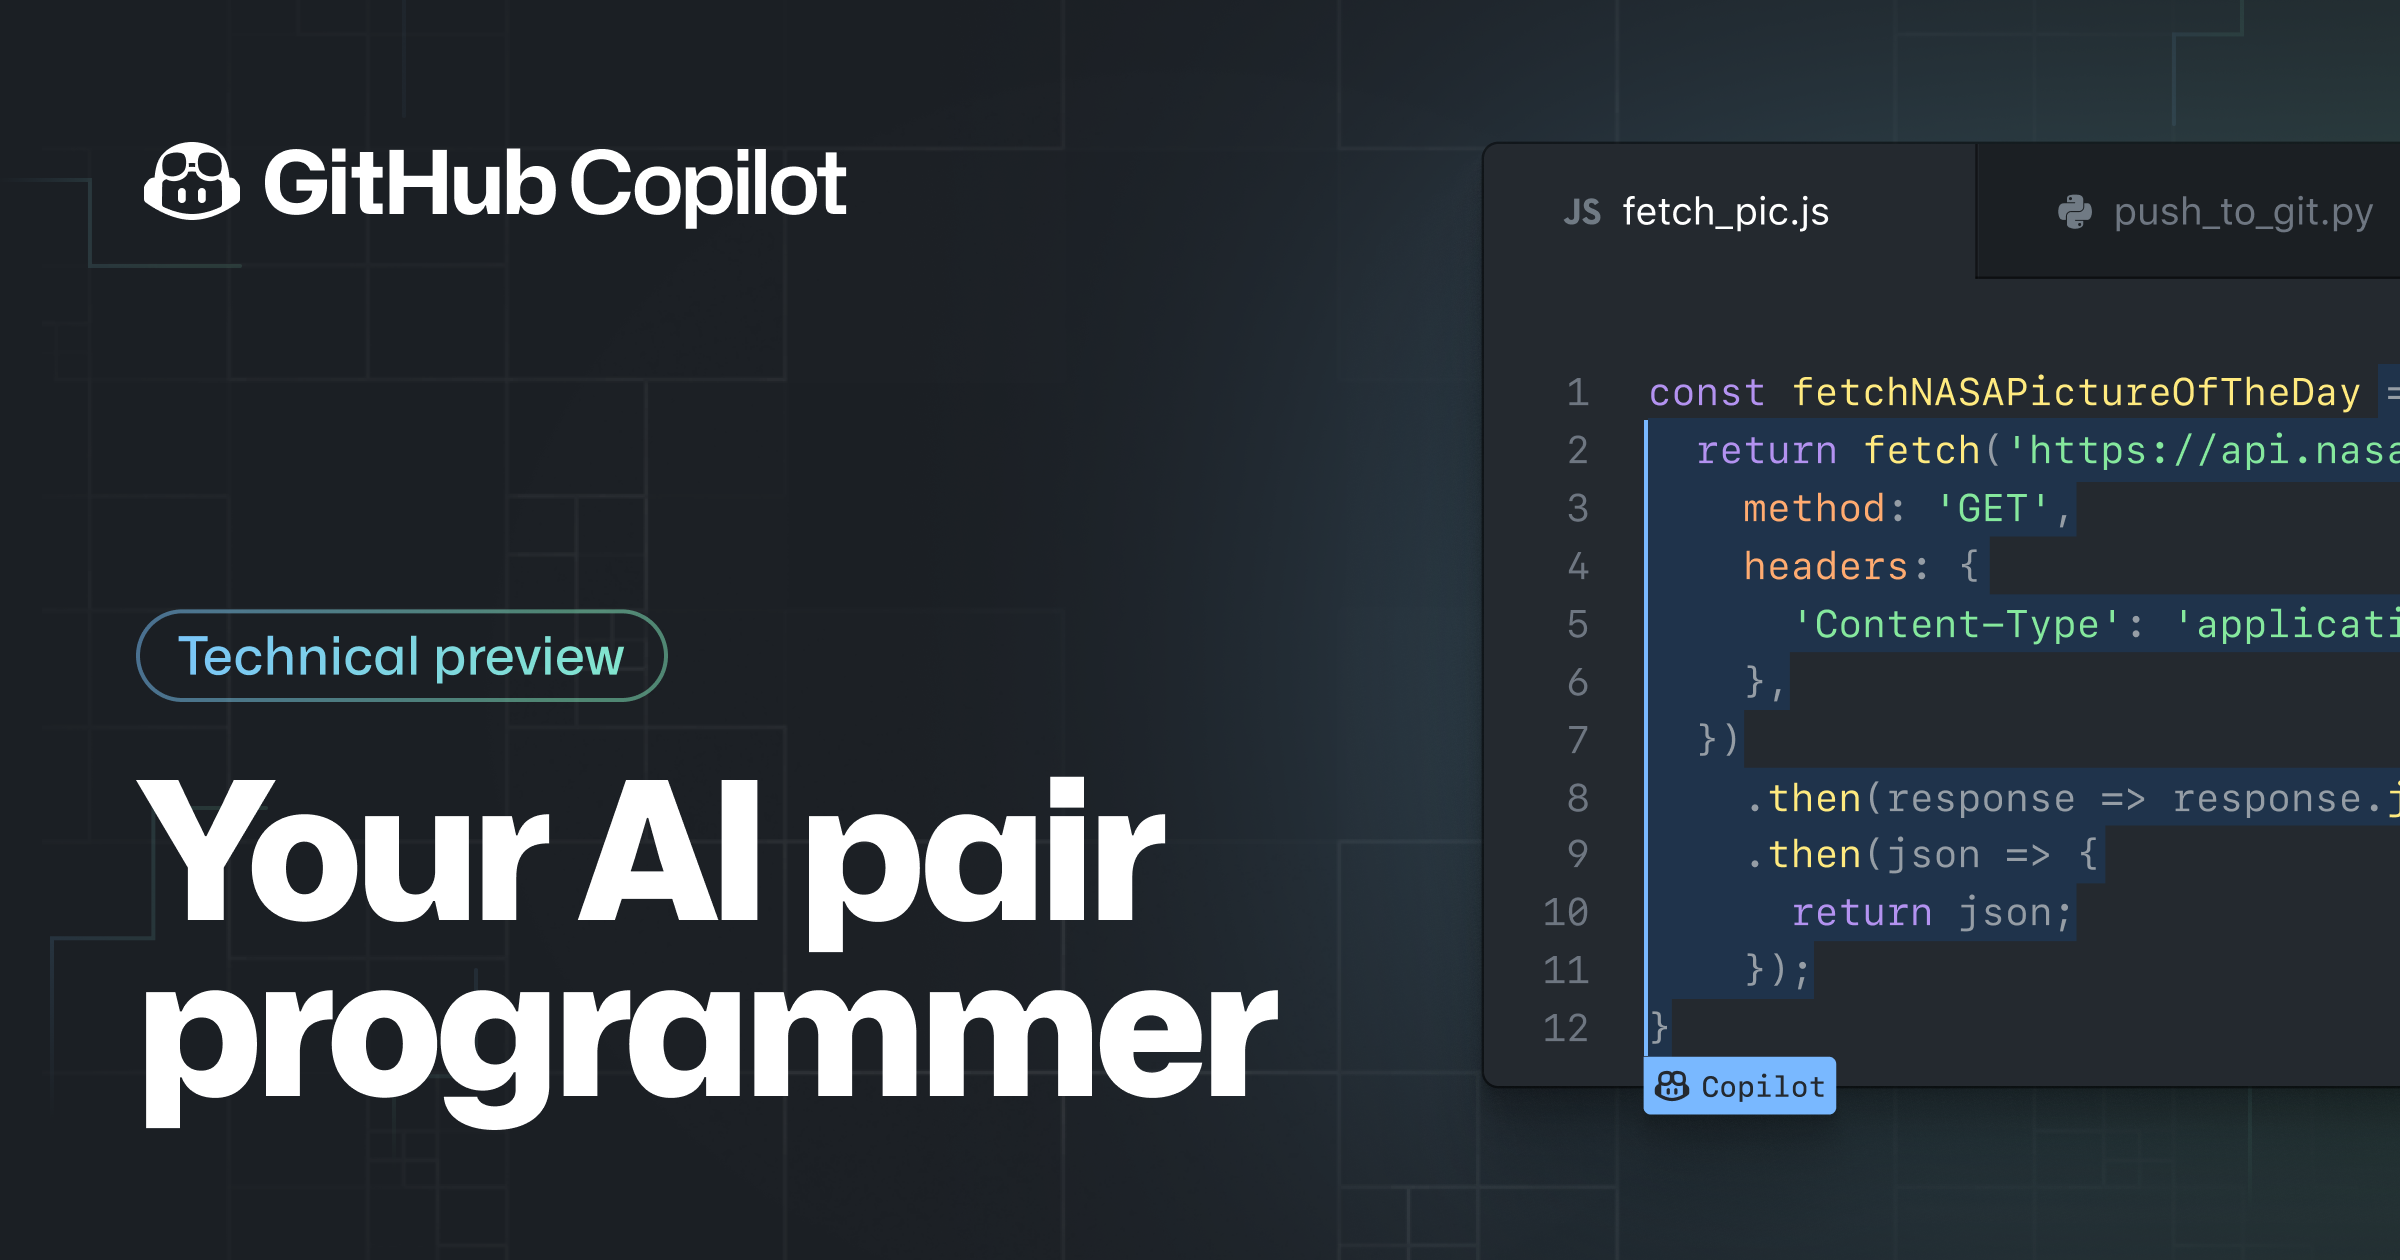 """GitHub and OpenAI launch an AI """"Copilot"""" that generates its own code"""